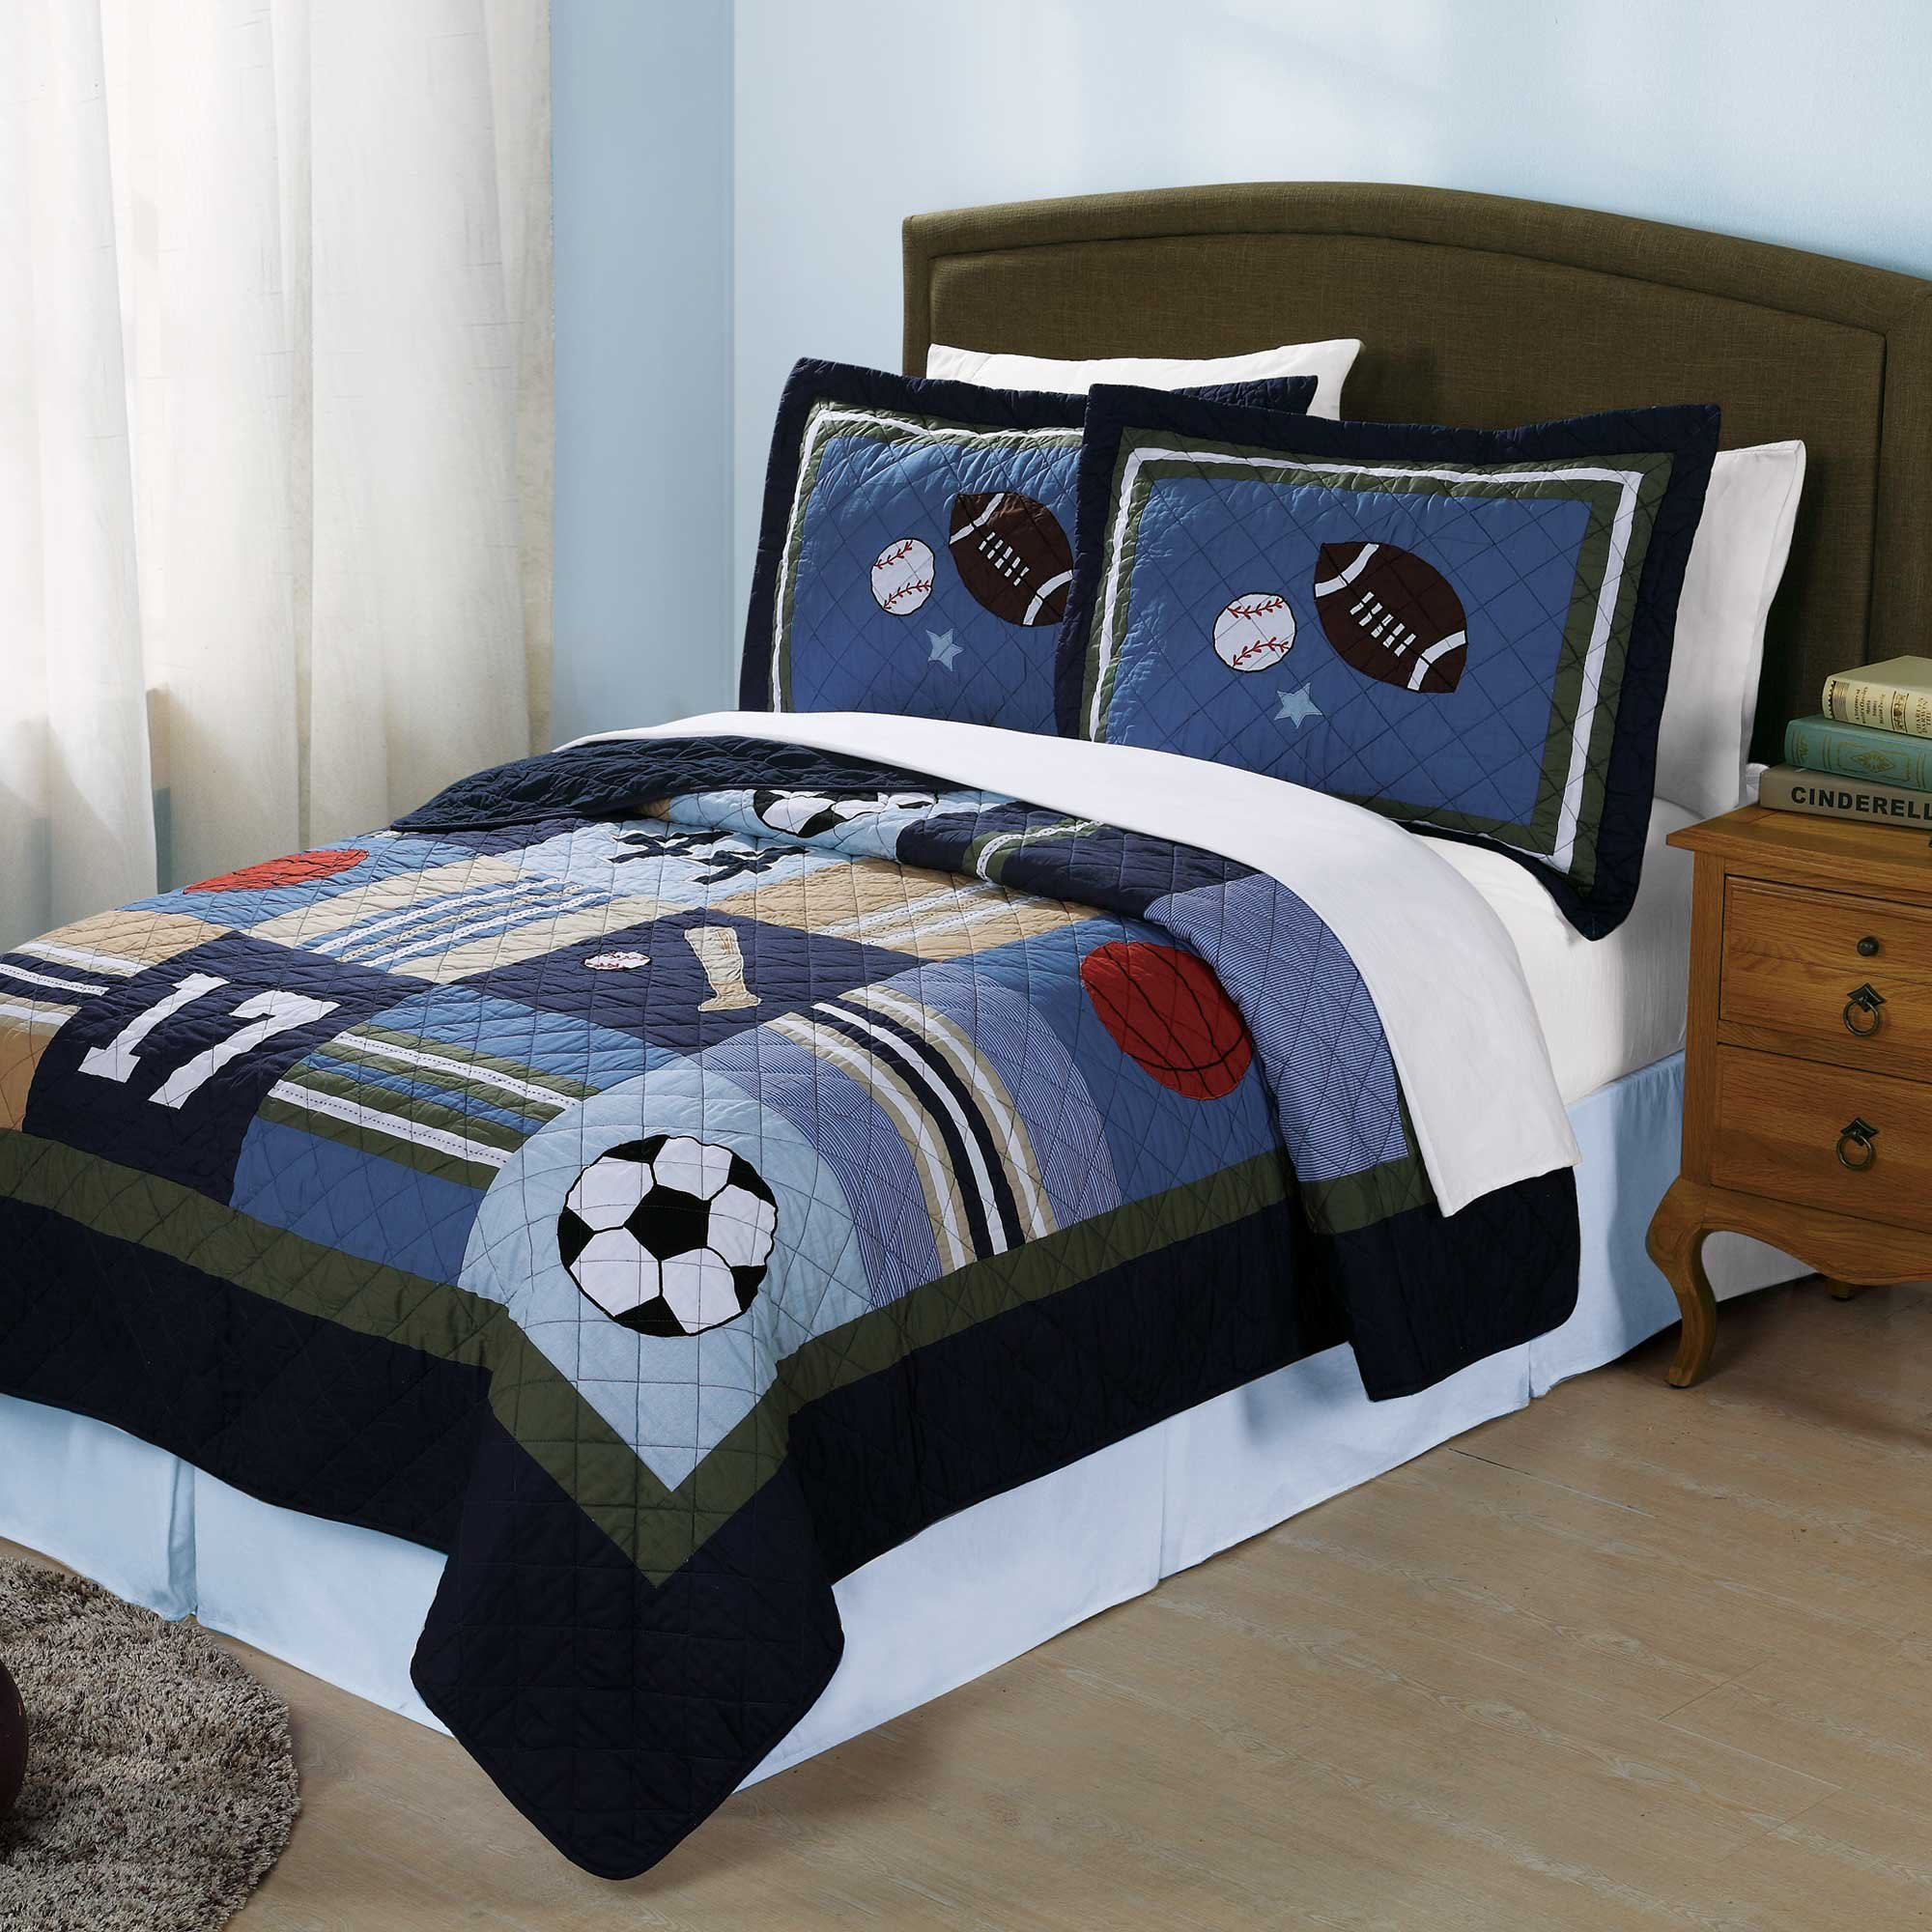 All State Twin Quilt & Sham Set by Pem America by Pem America (Image #1)